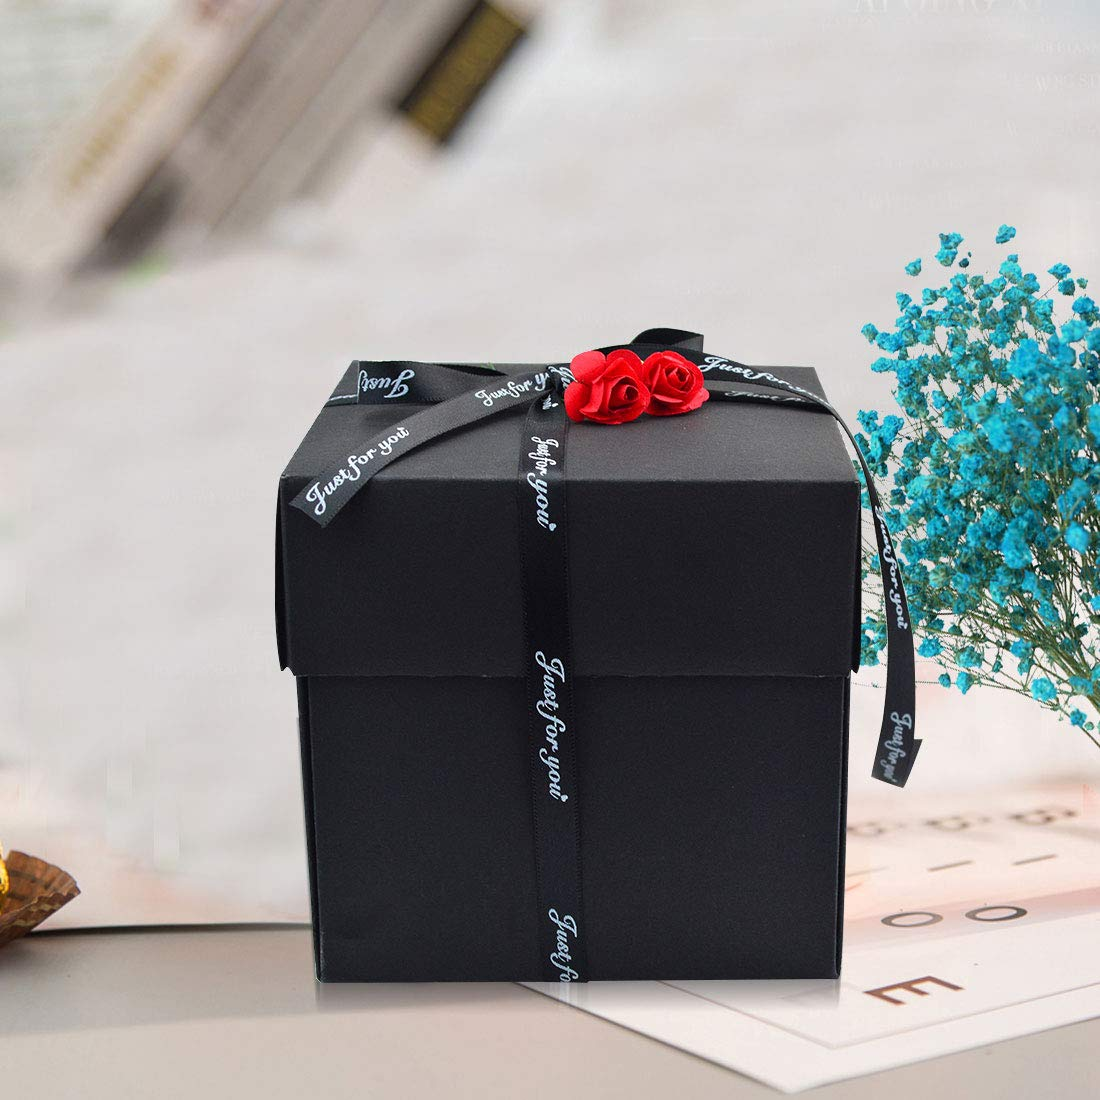 Creative Explosion Gift Box, Surprised Gifts Boxes,DIY Photo Album Box for Birthday & Valentine\'s Day